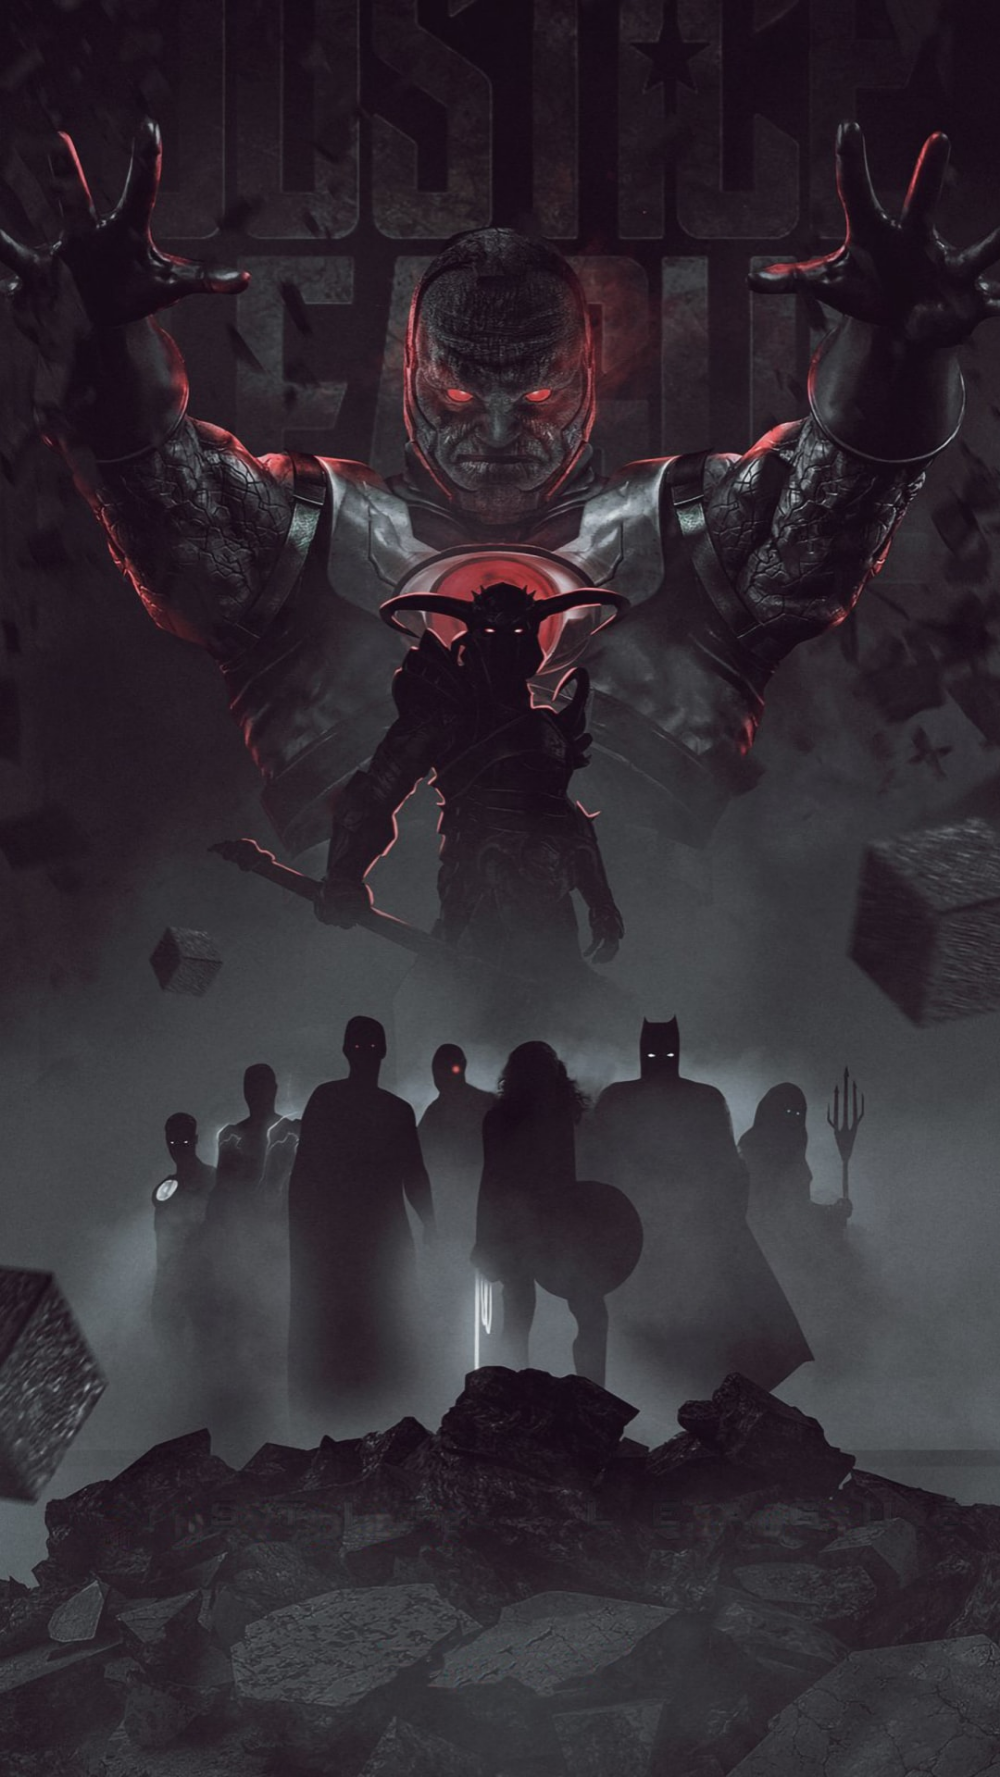 Zack Snyder S Justice League Best Smartphone Wallpapers In 2021 Justice League Art Darkseid Justice League Justice League Comics